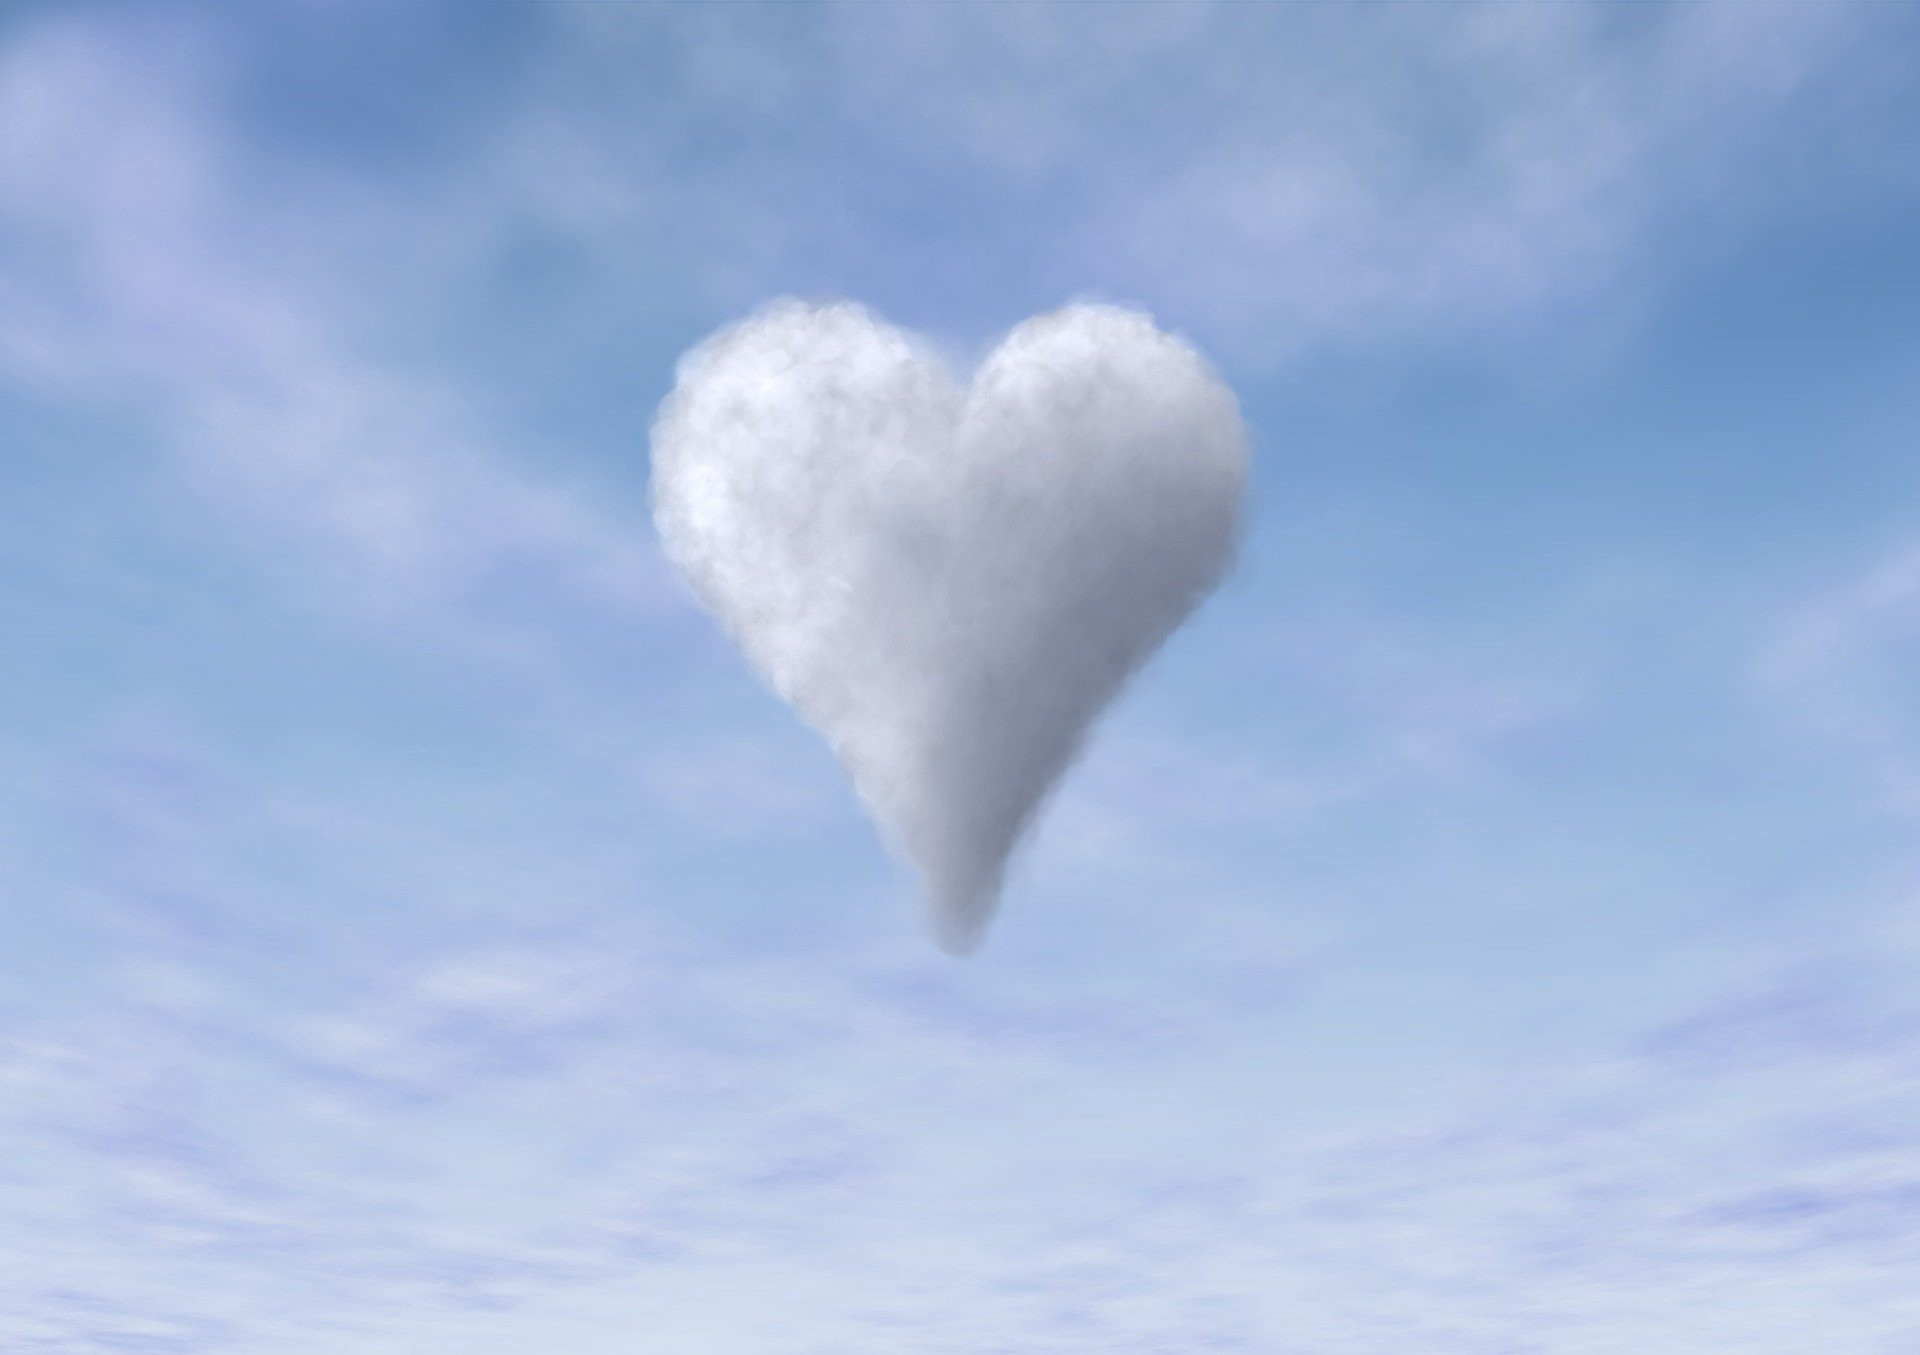 A white heart shaped cloud in a baby blue sky